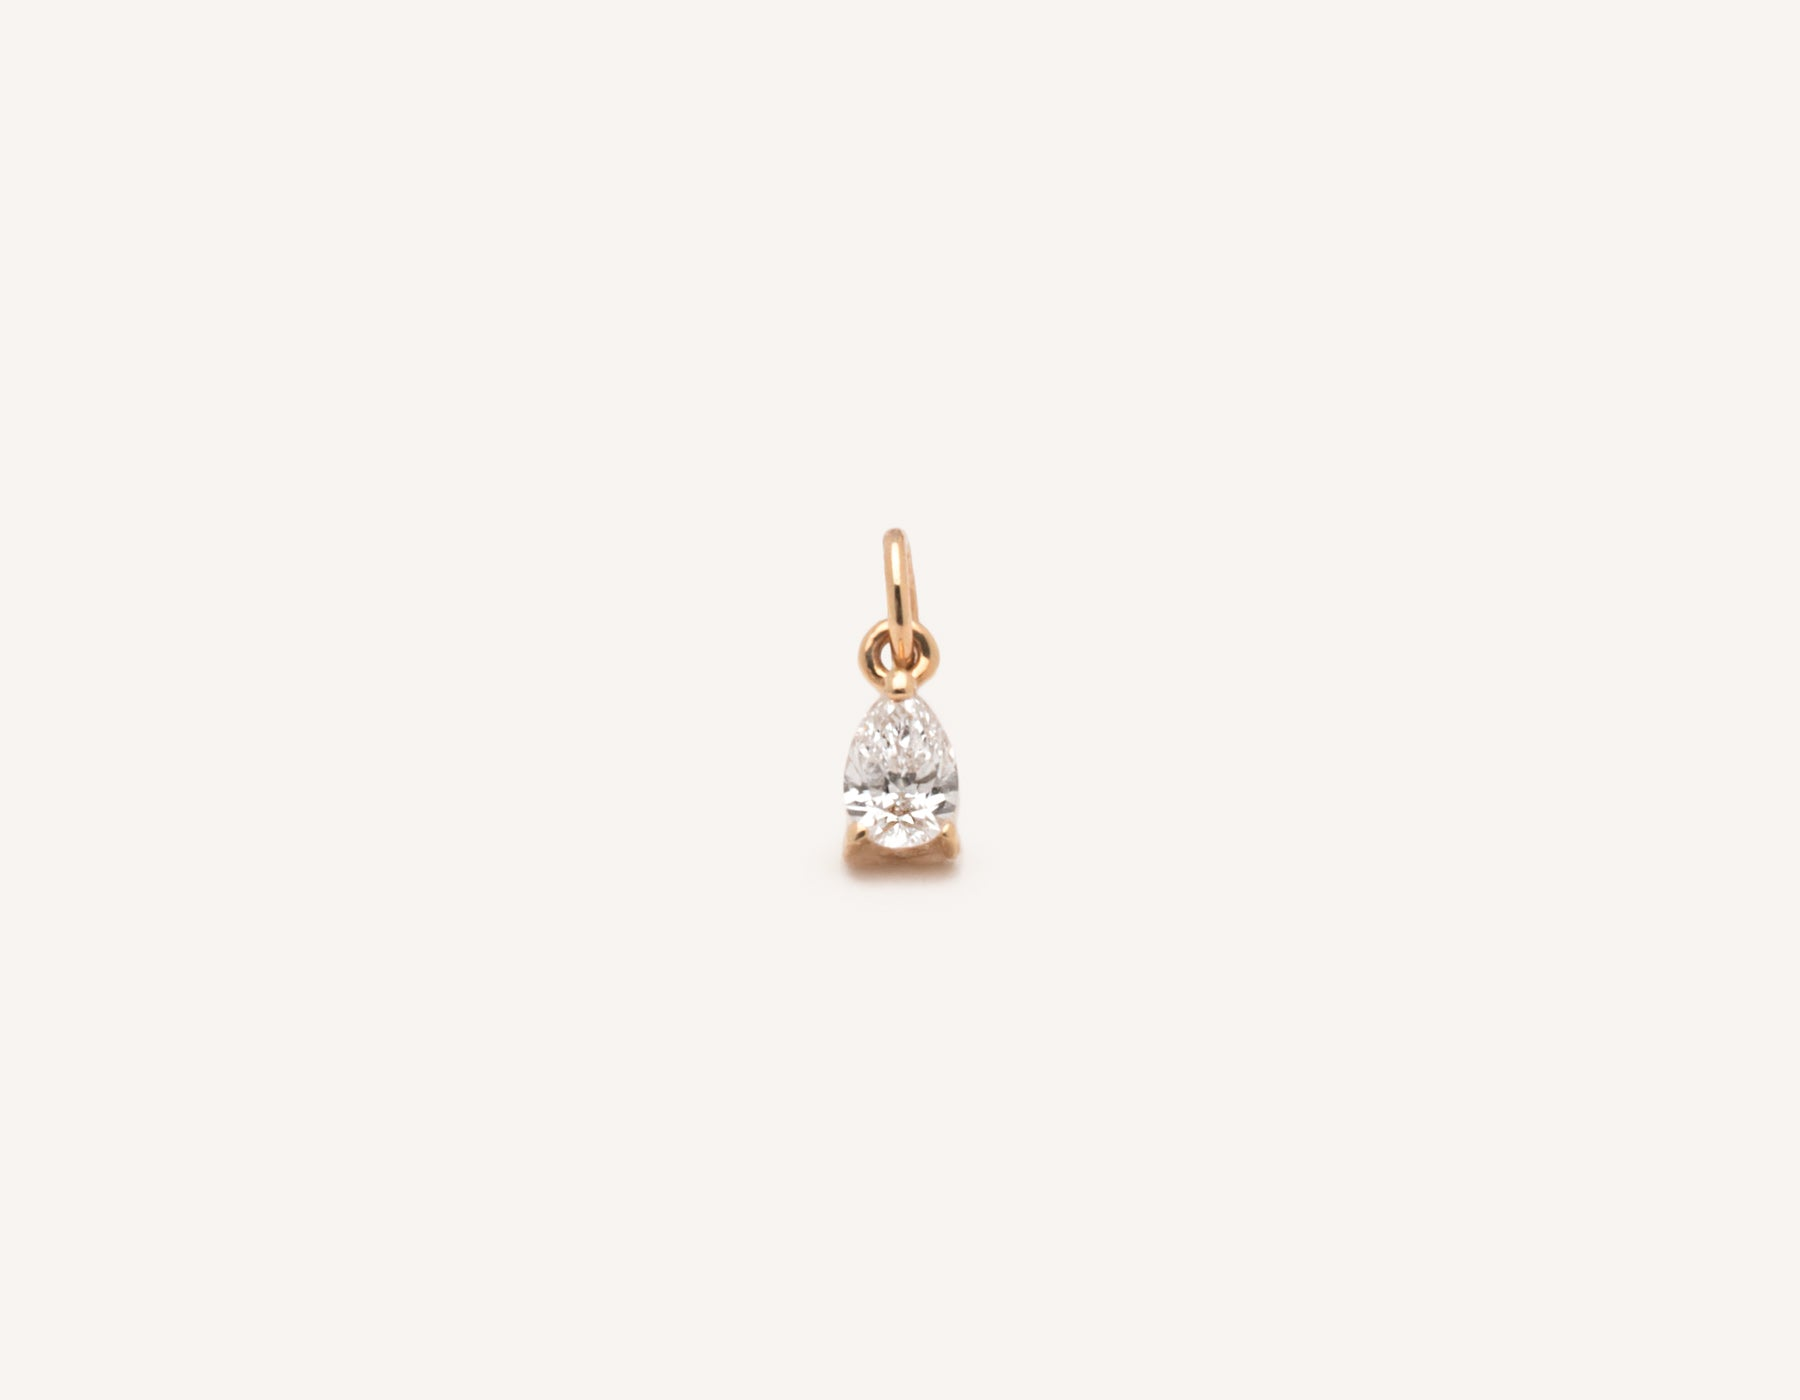 Simple classic Pear Diamond Pendant .15 carat charm 14k solid gold Vrai and Oro minimalist jewelry, 14K Rose Gold